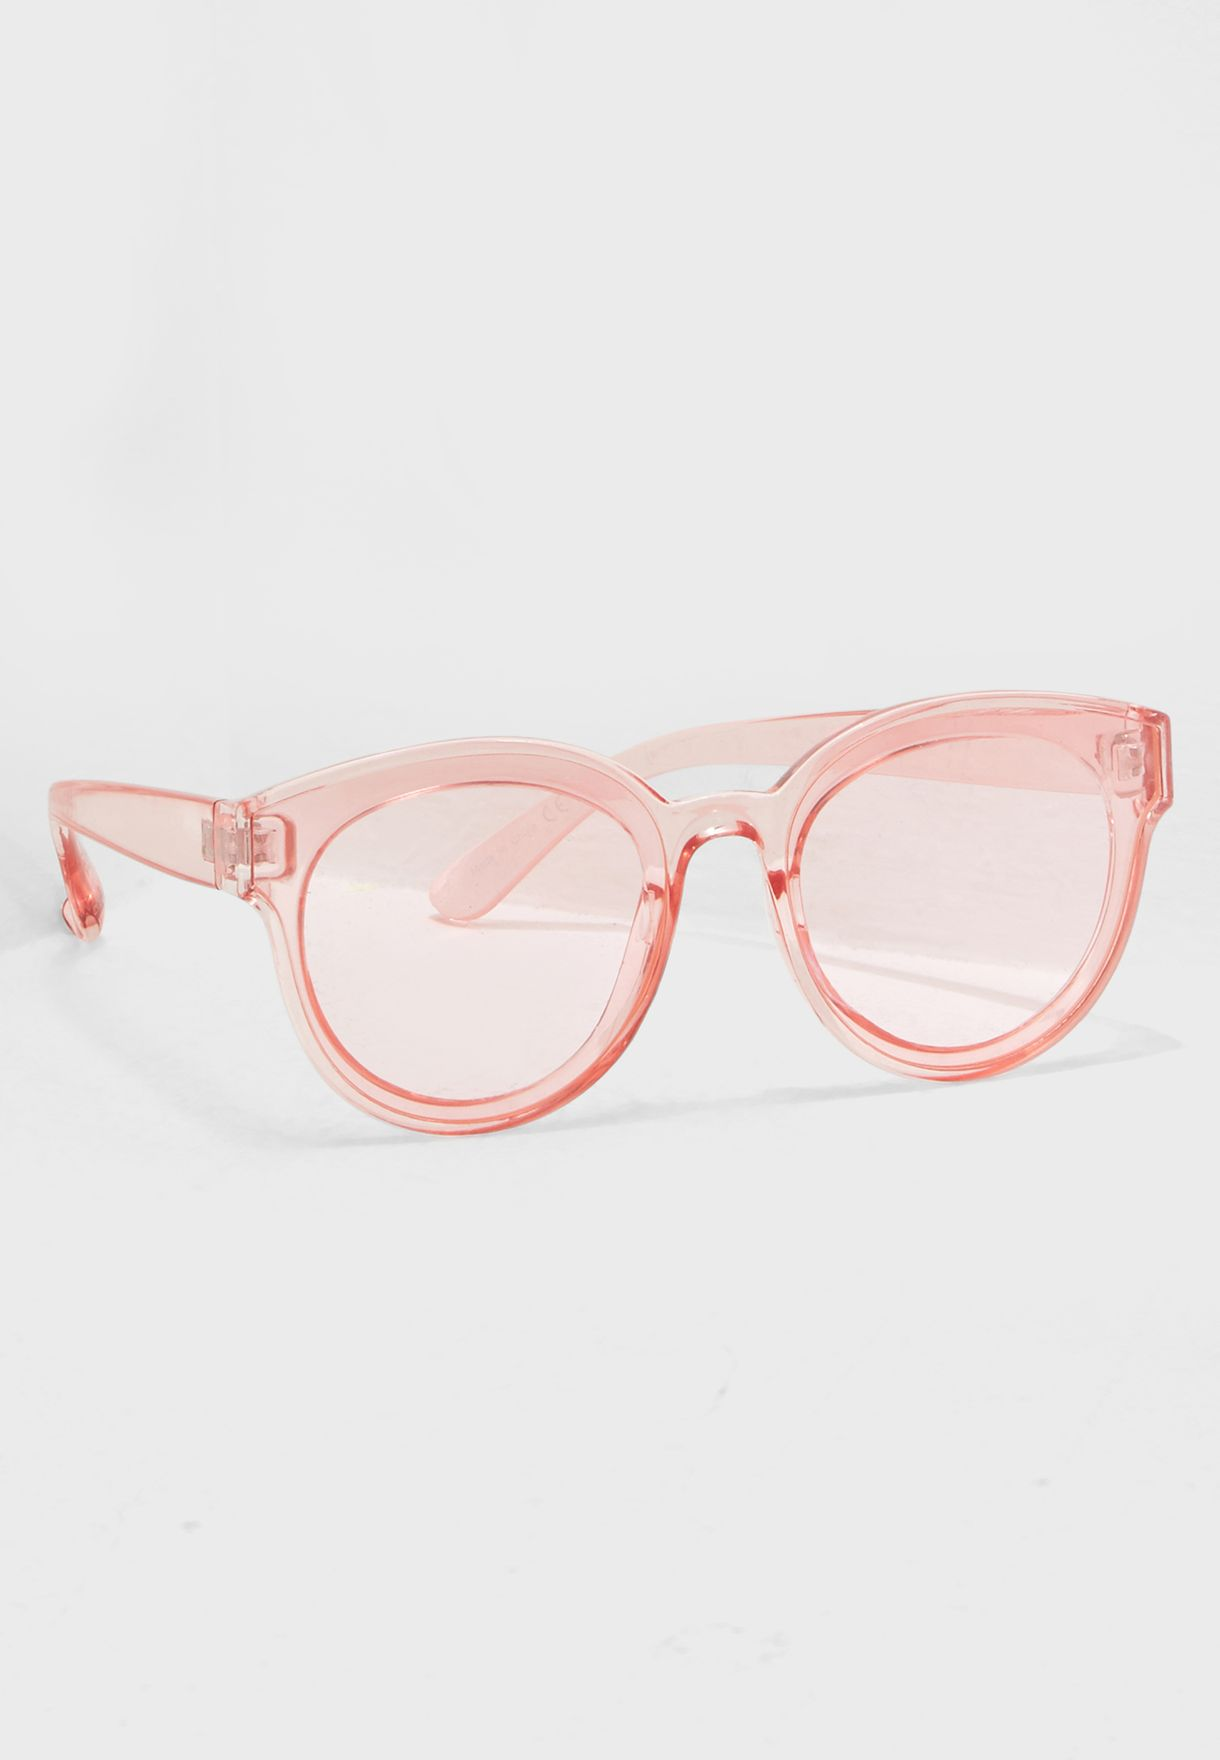 d968624960c4 Shop Call It Spring pink Teasien Square Sunglasses TEASIEN55 for ...